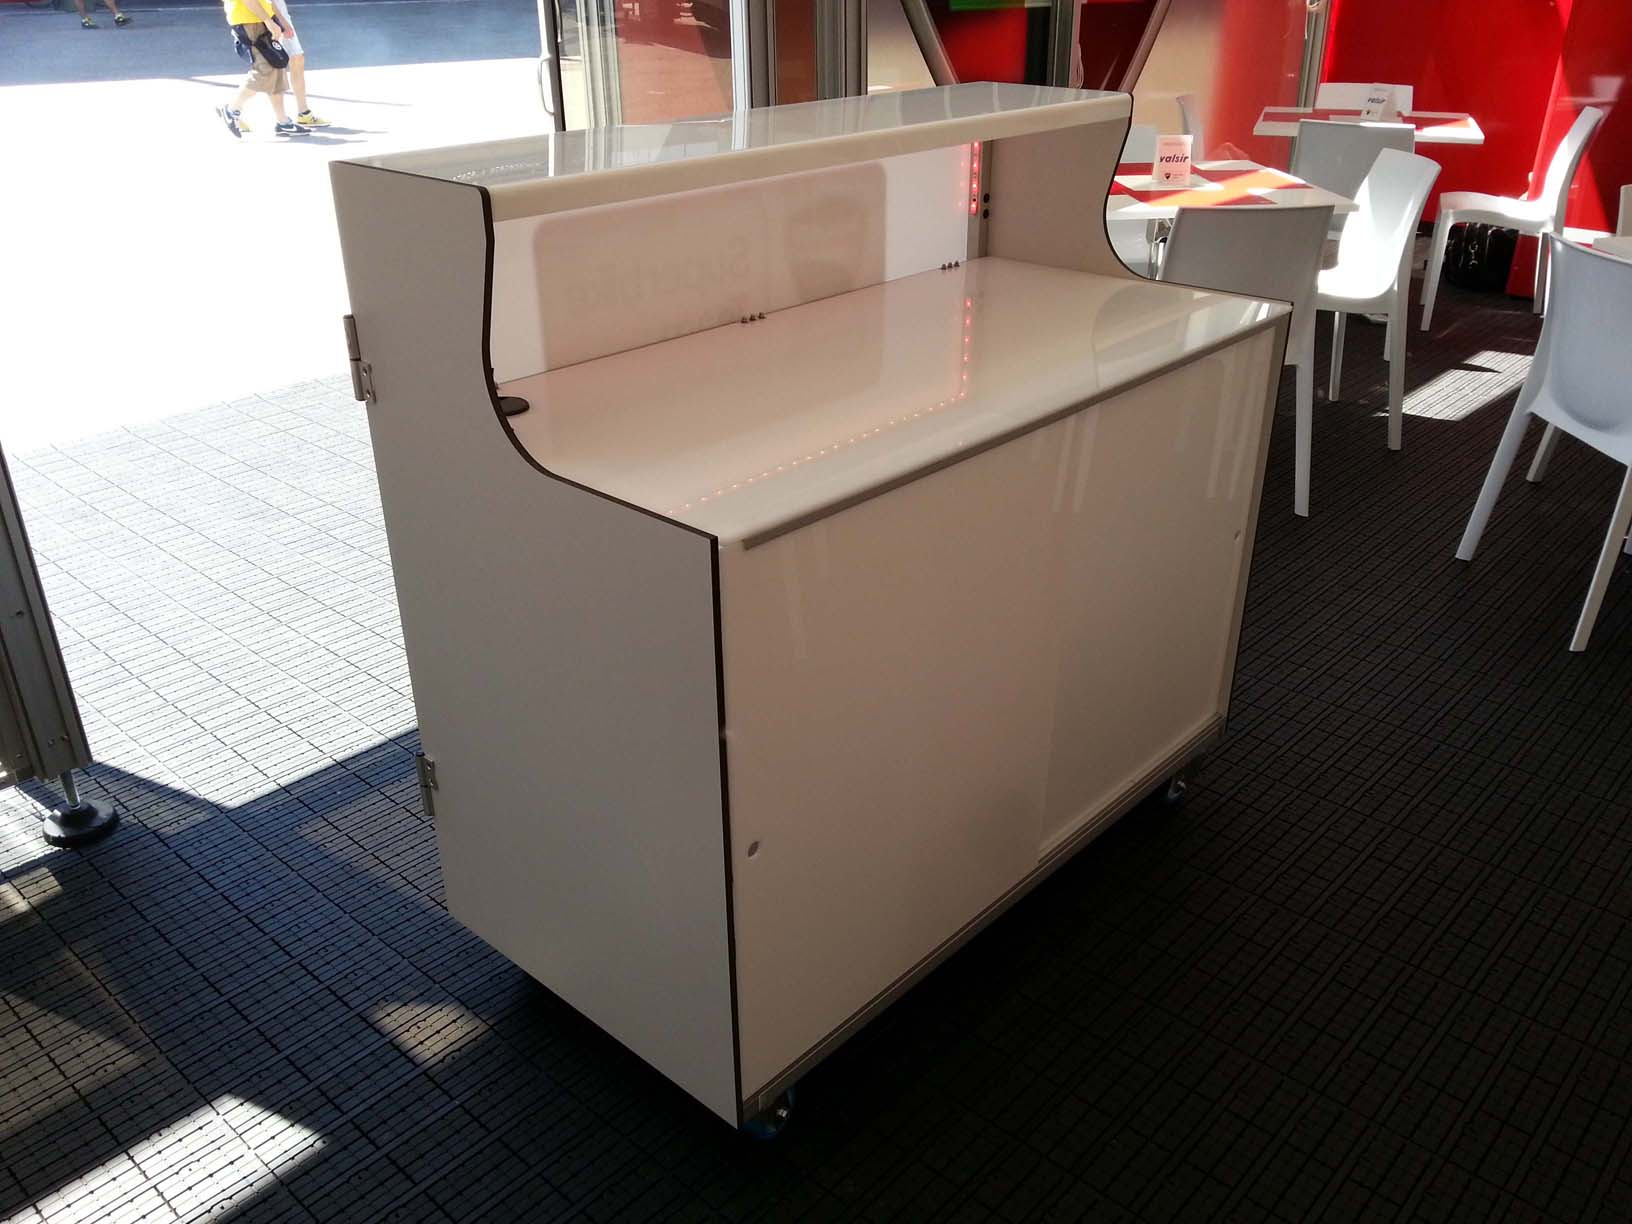 desk for sport events and demonstration, reception bar counter